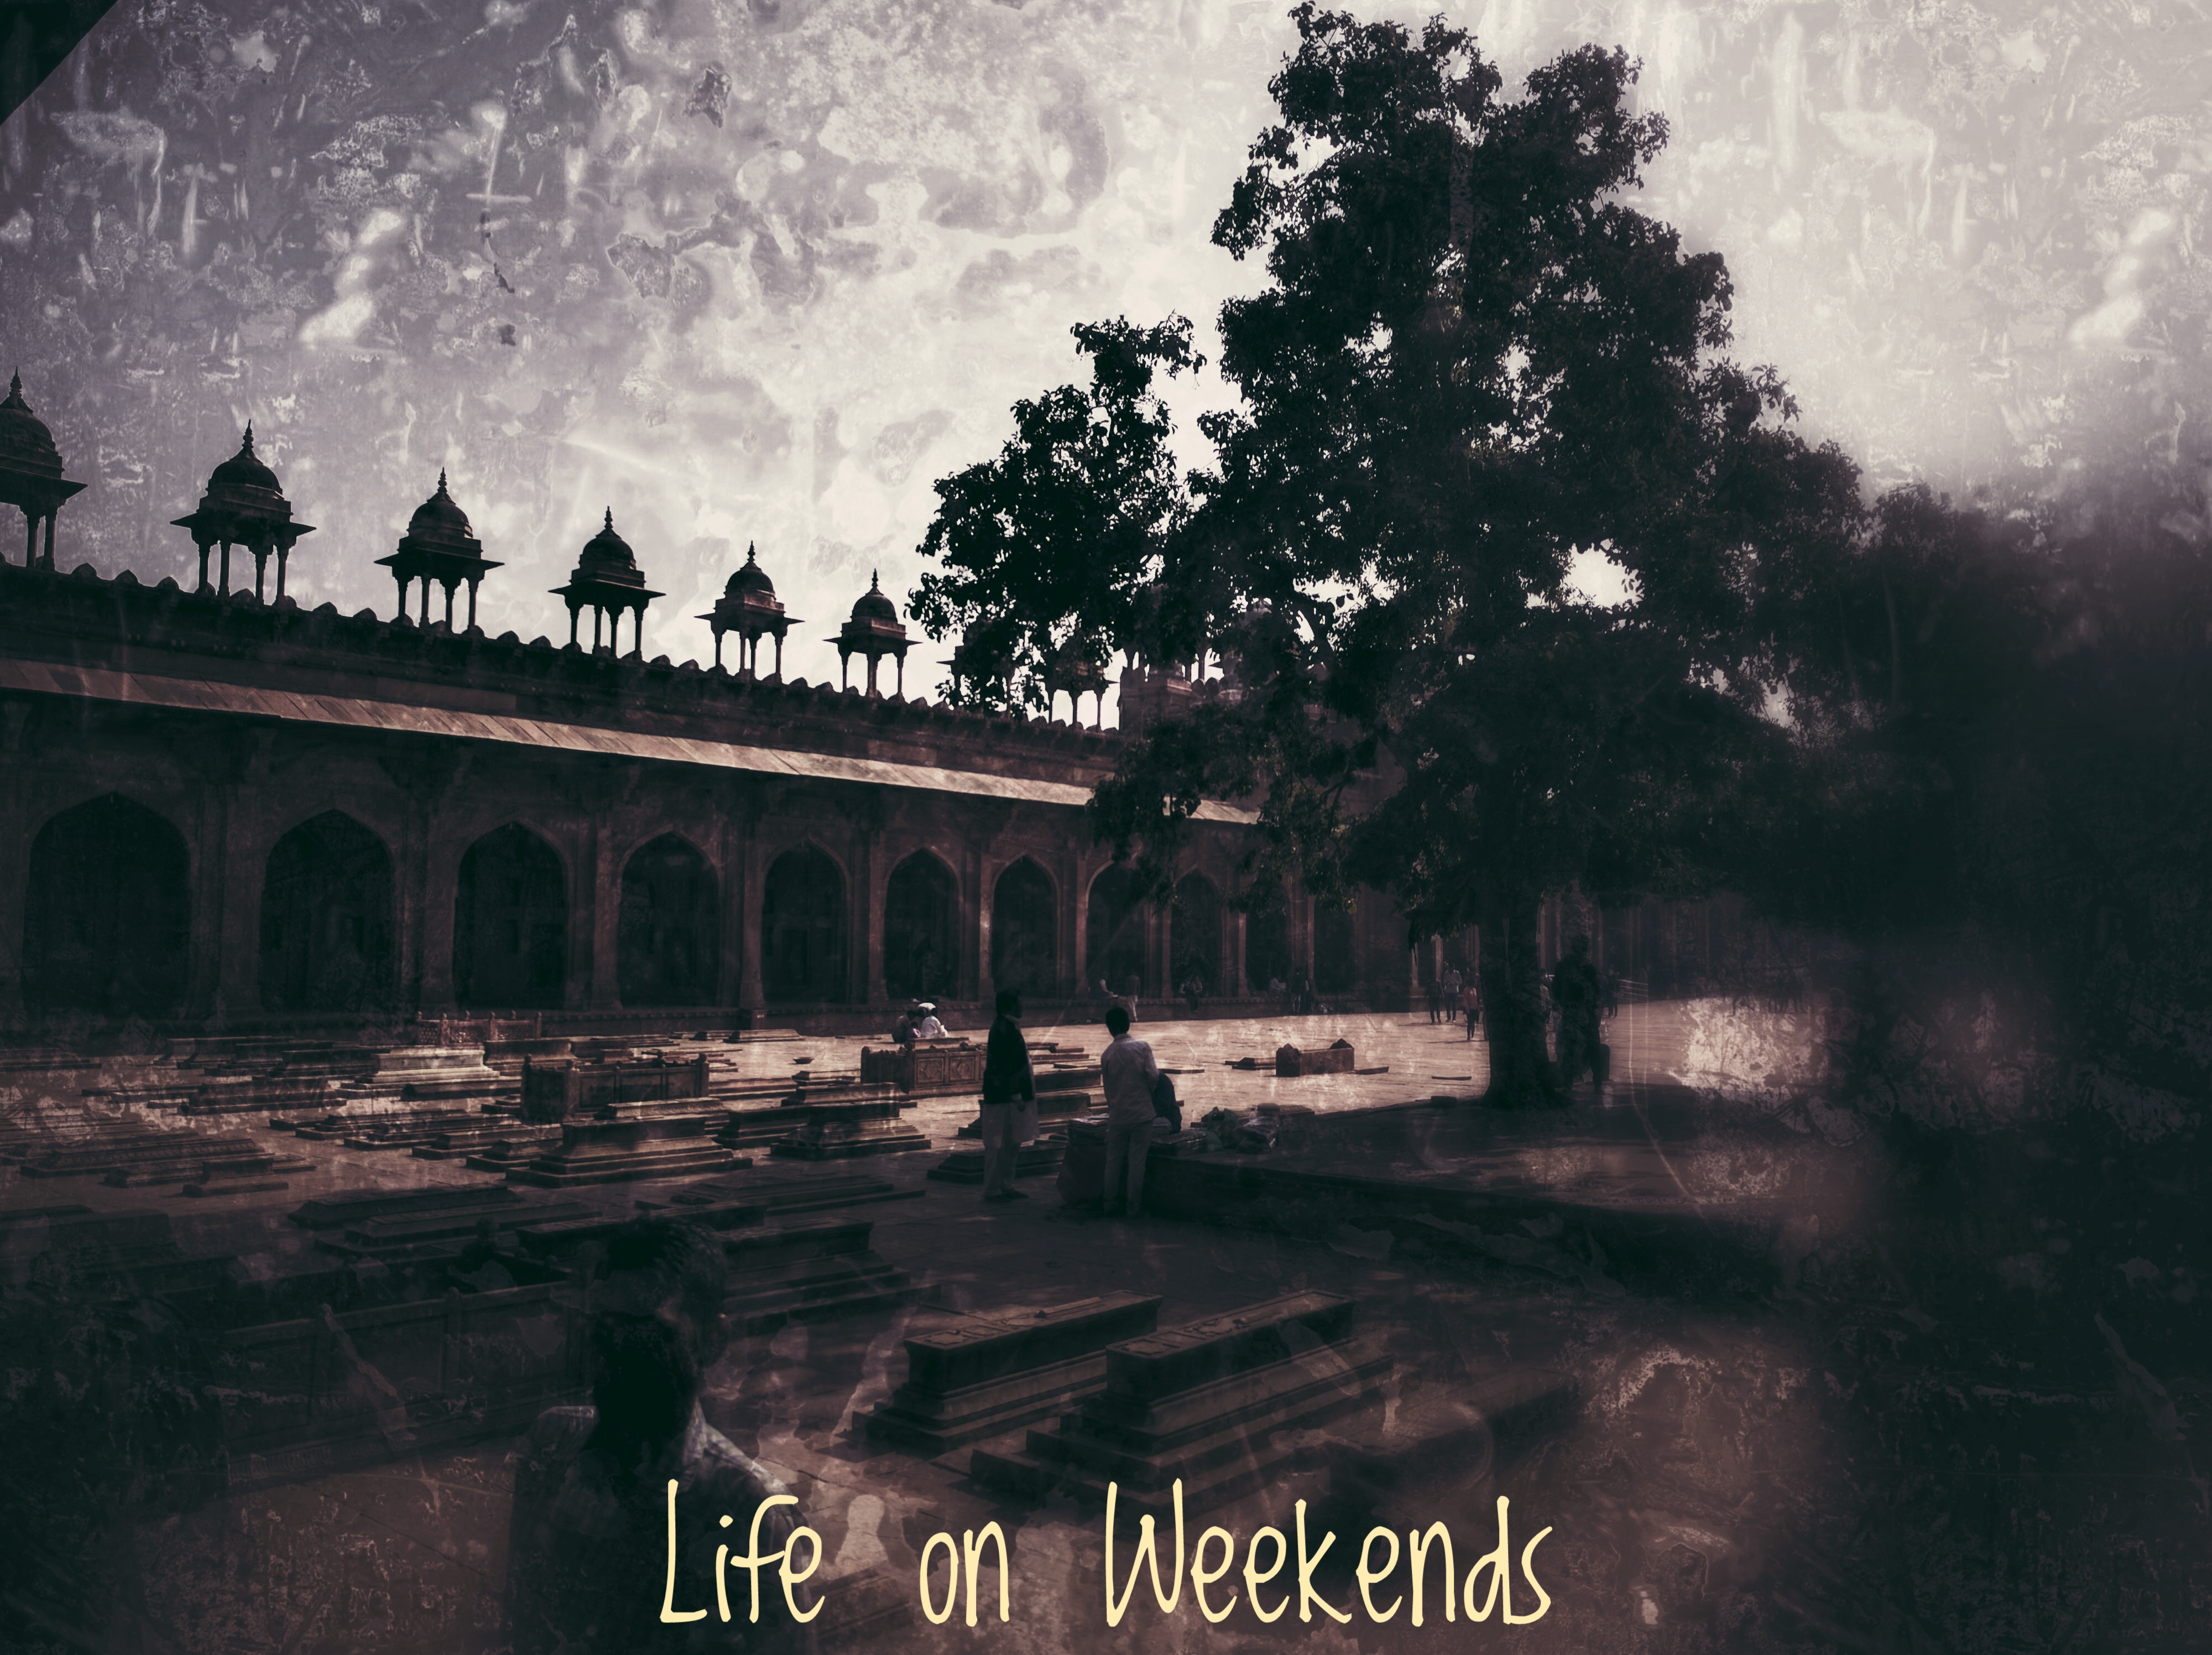 Buland Darwaza or Gate of Magnificence, Fatehpur Sikri @Life on Weekends